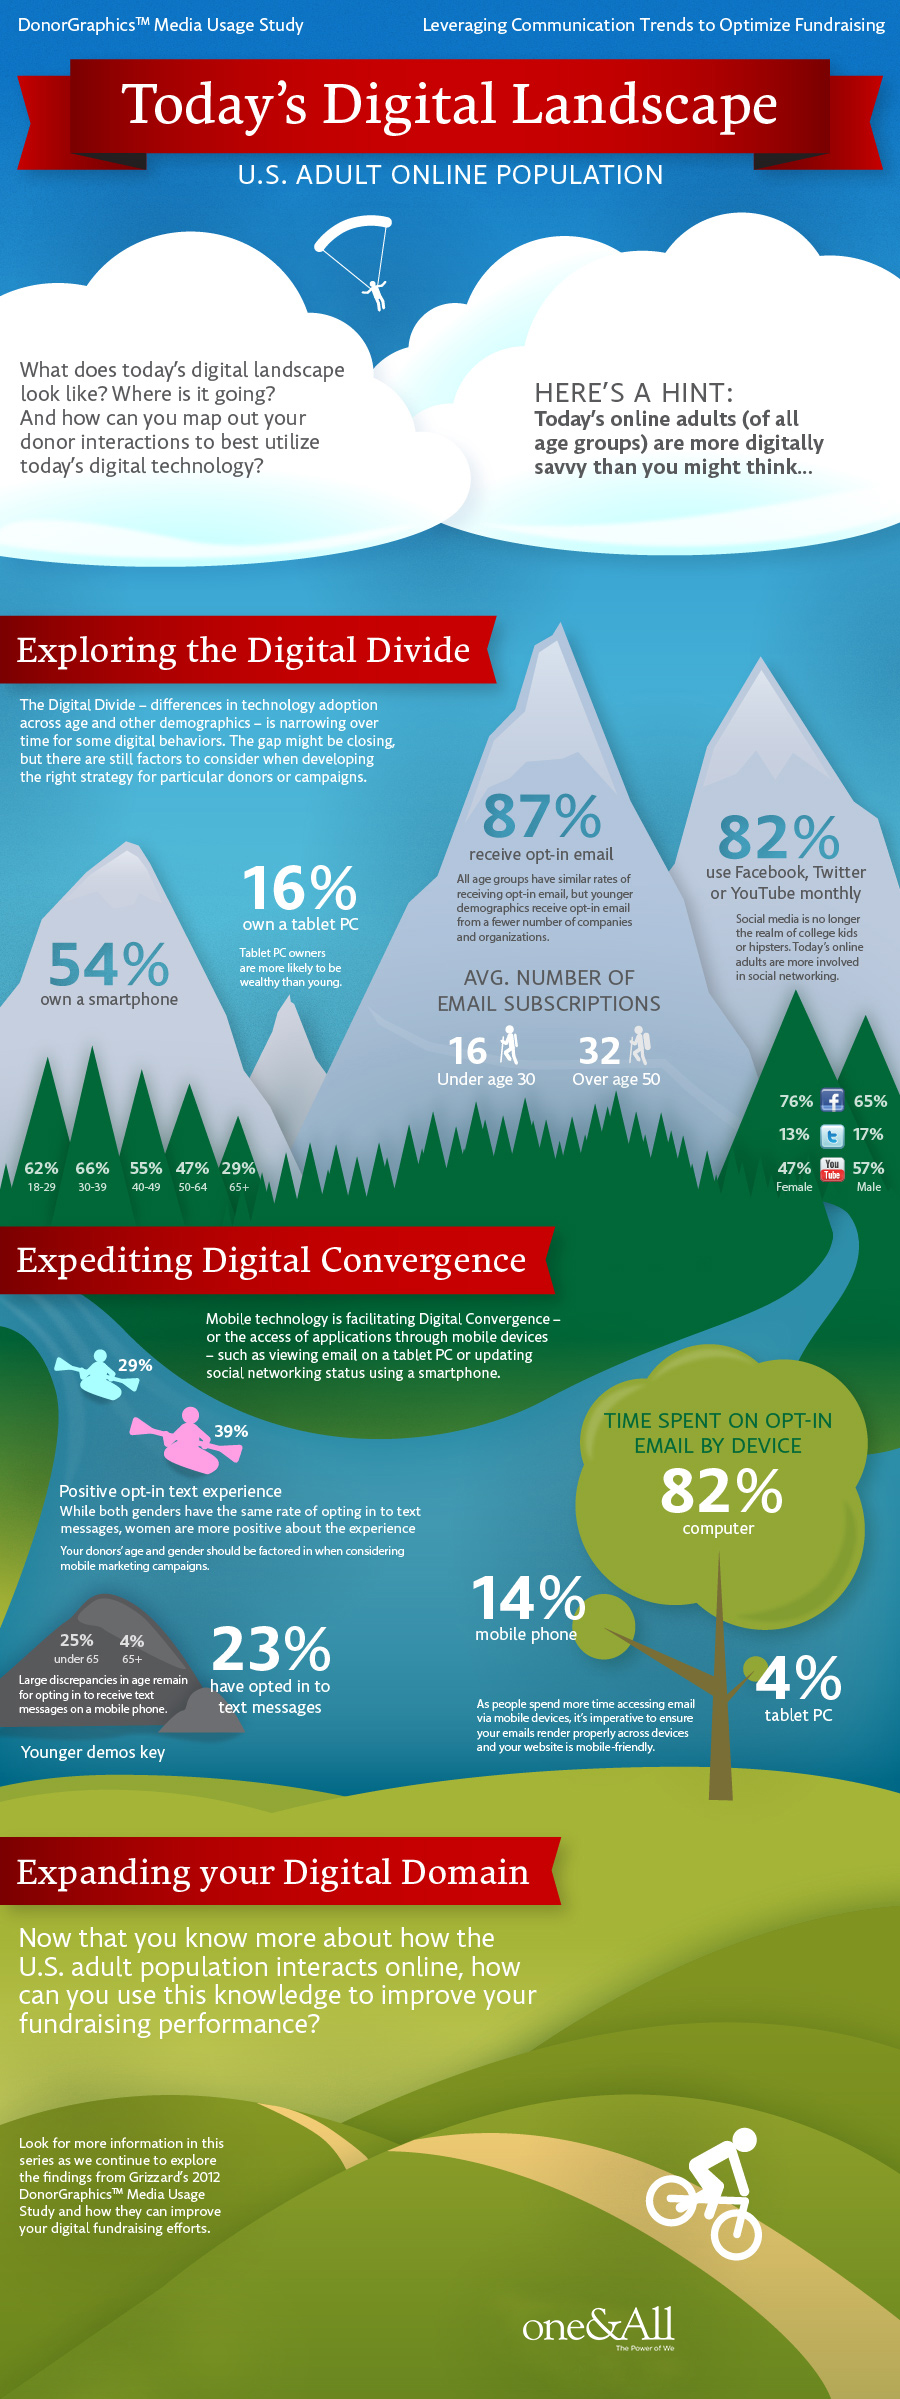 Today's Digital Landscape Infographic